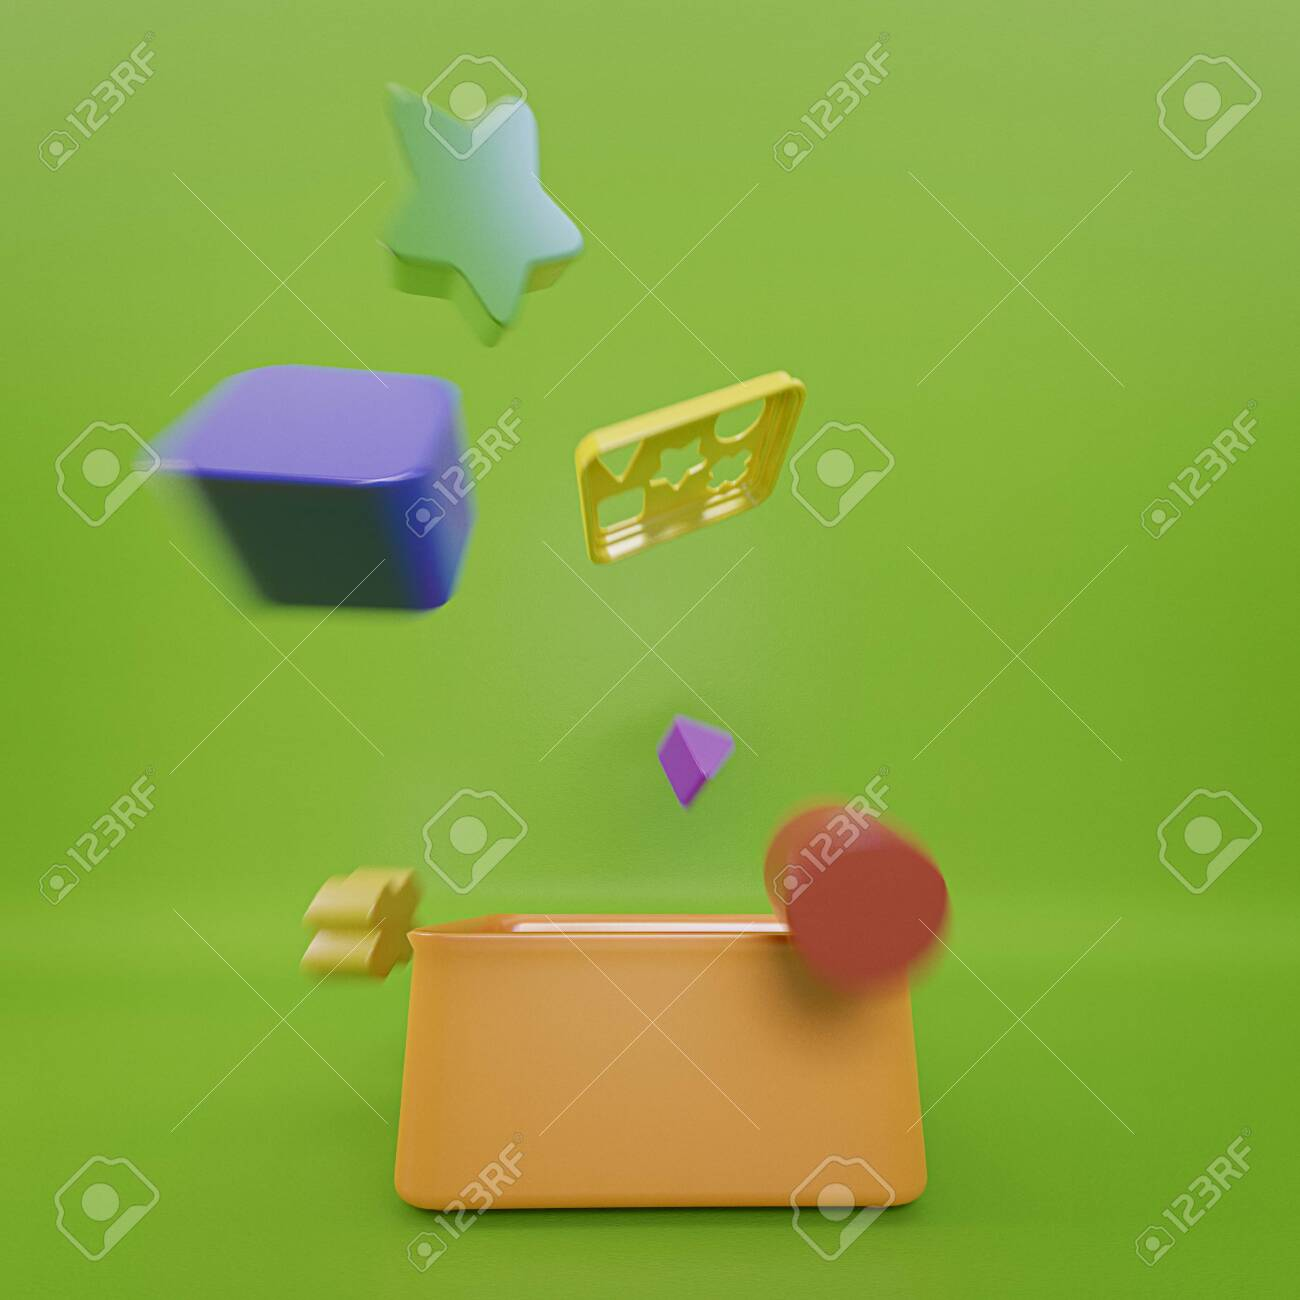 Colorful Geometry Toy Blocks Getting Out Of A Toy Box Children Stock Photo Picture And Royalty Free Image Image 146847429